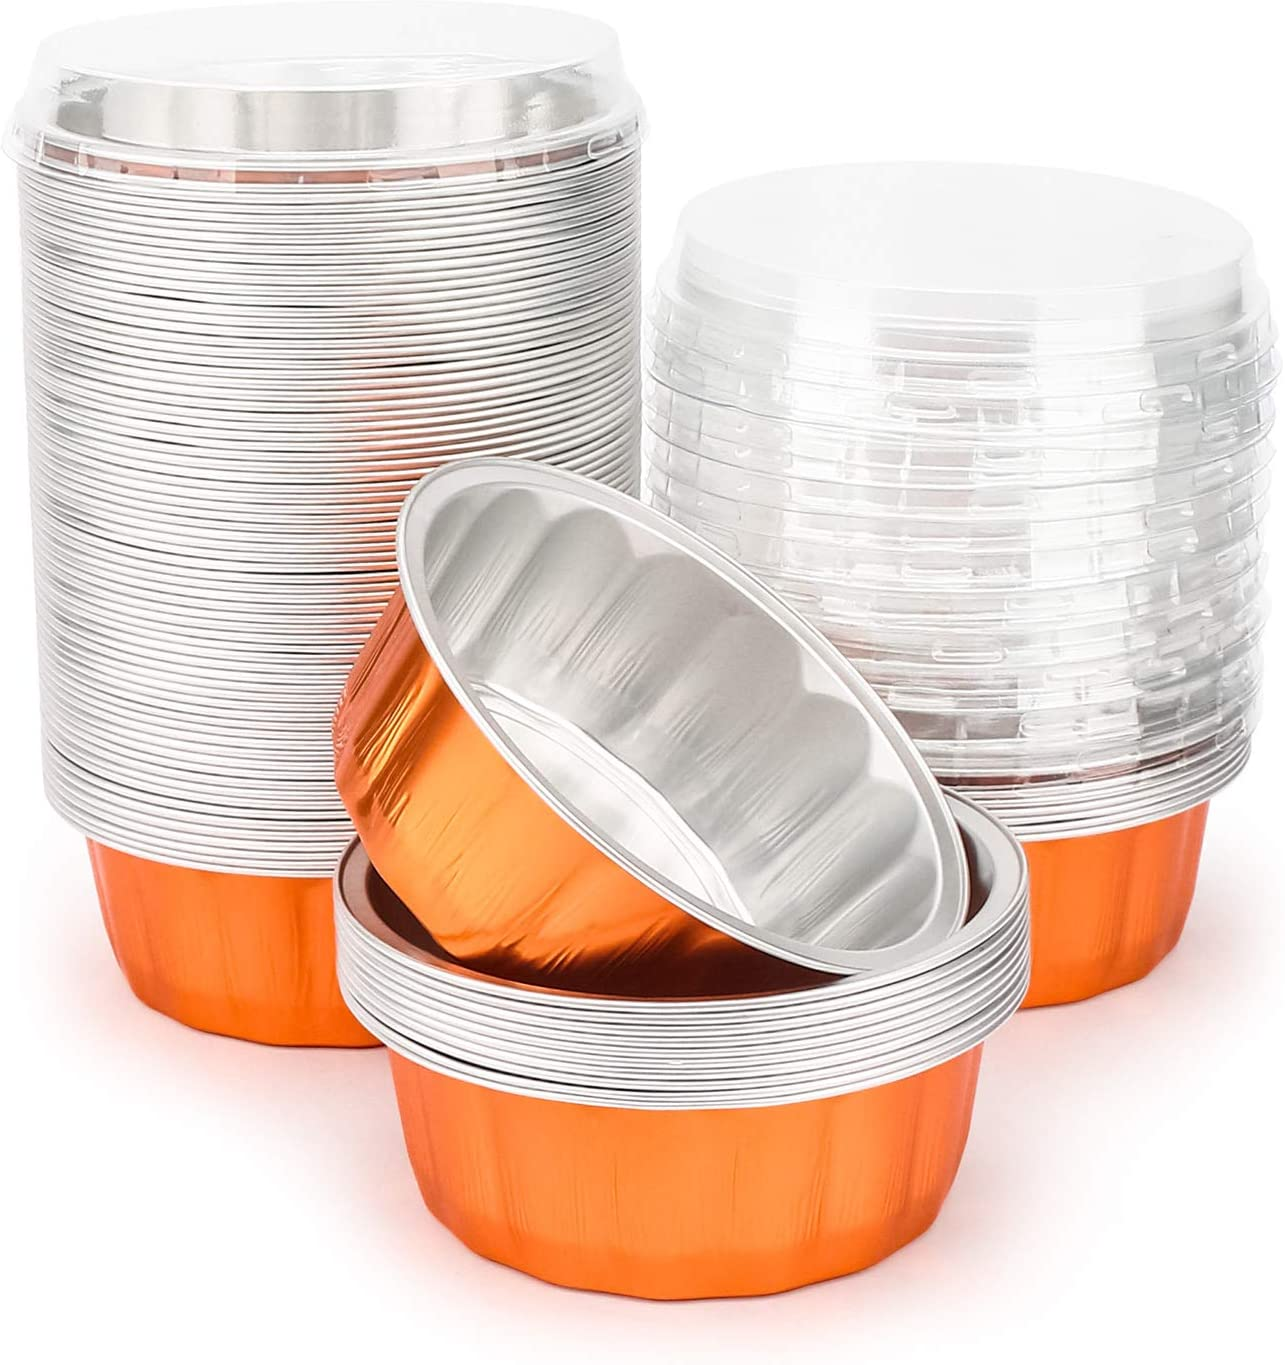 Disposable Creme Brulee Muffin Cupcake Baking Cup Mini Pudding Cups for Party Wedding Birthday Disposable Ramekins for Baking Orange Beasea 8 oz 50 Pack 4 Inch Aluminum Foil Cups with Lids